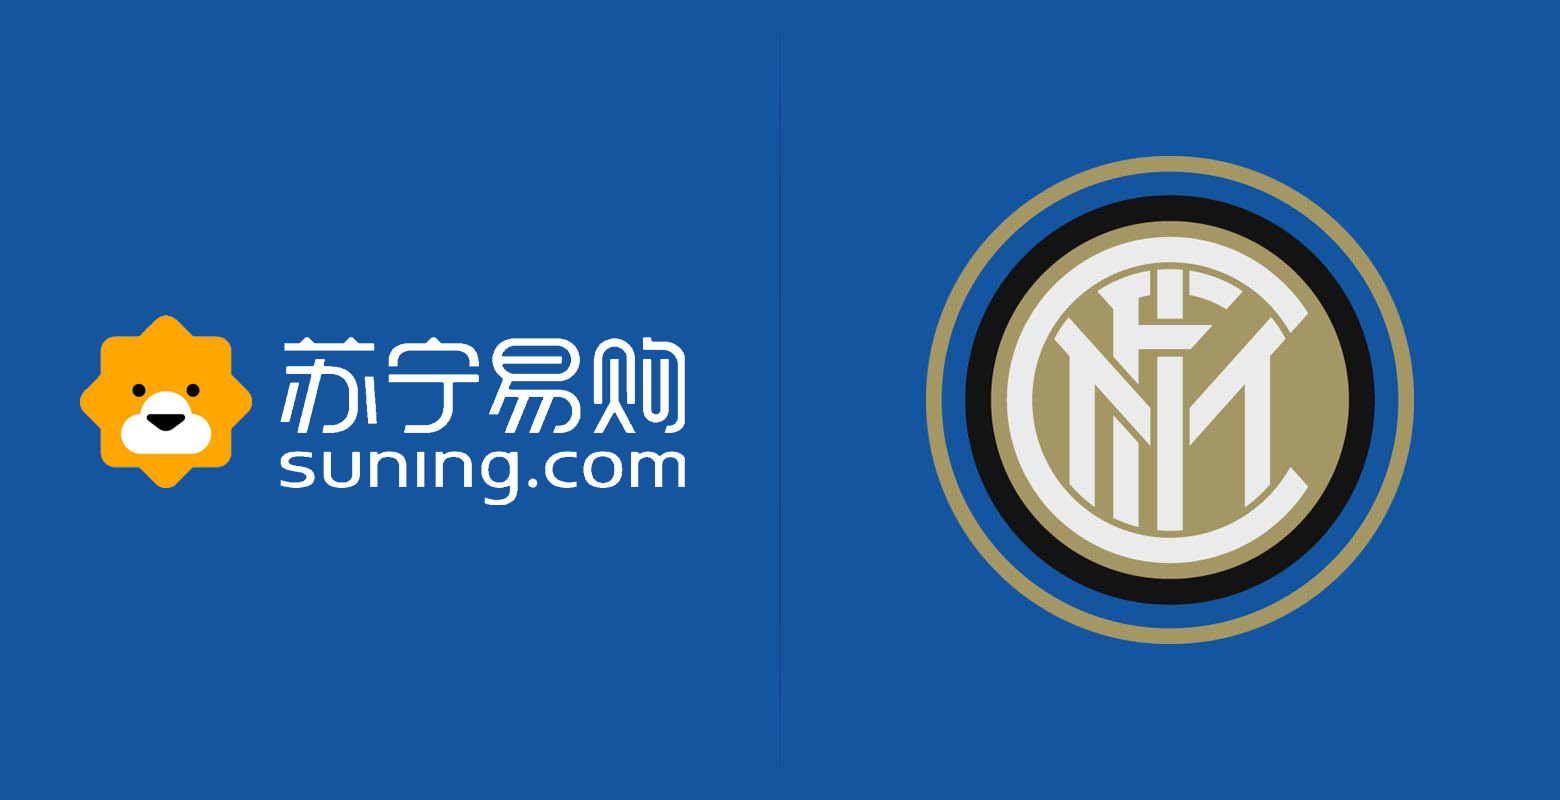 sun inter milan logo - photo #12